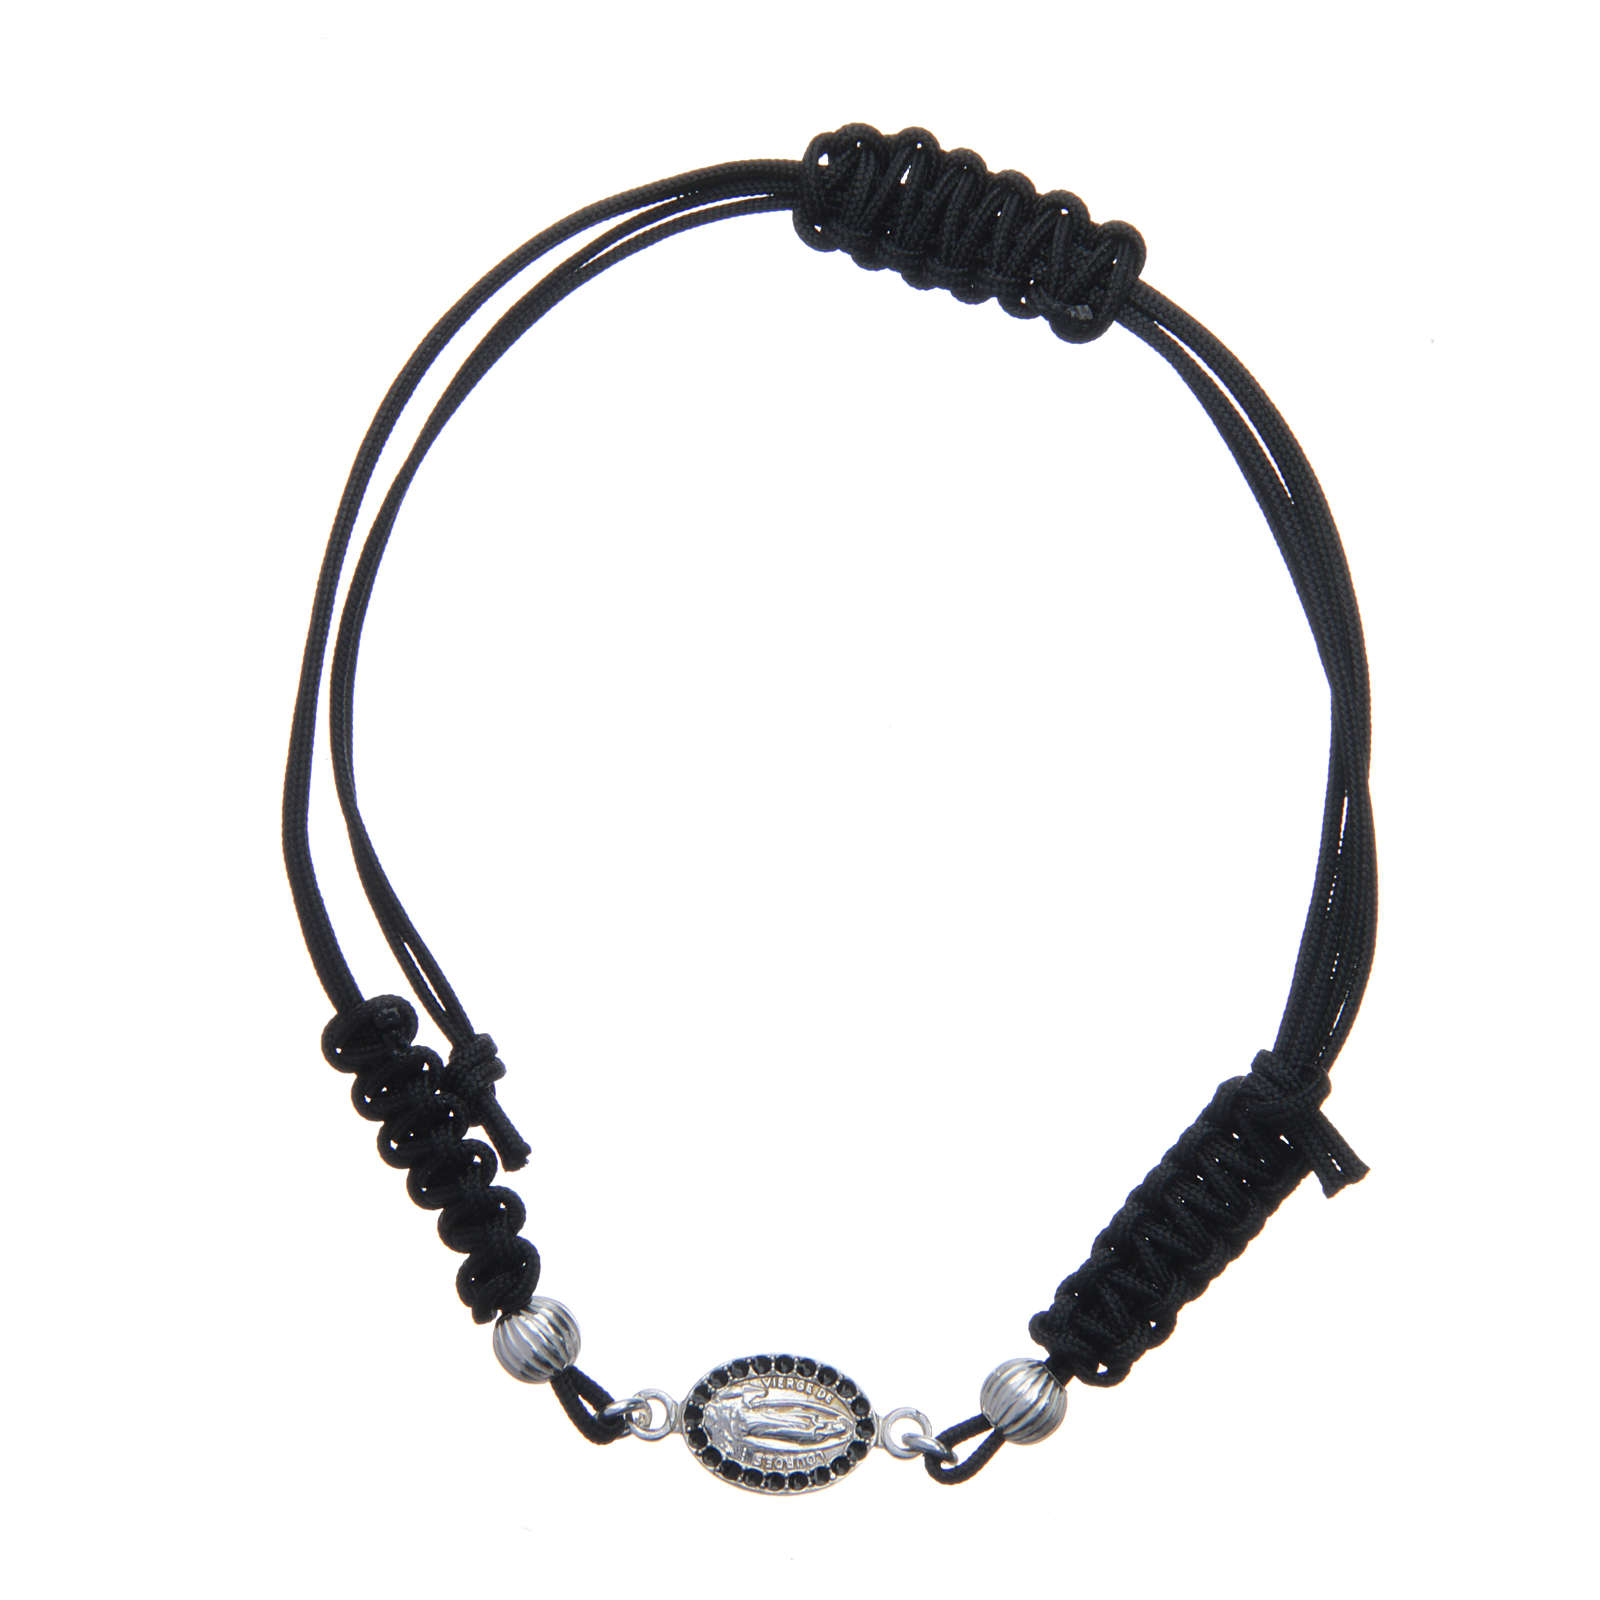 Bracelet with Our Lady of Lourdes medal in 925 silver, black cord 4